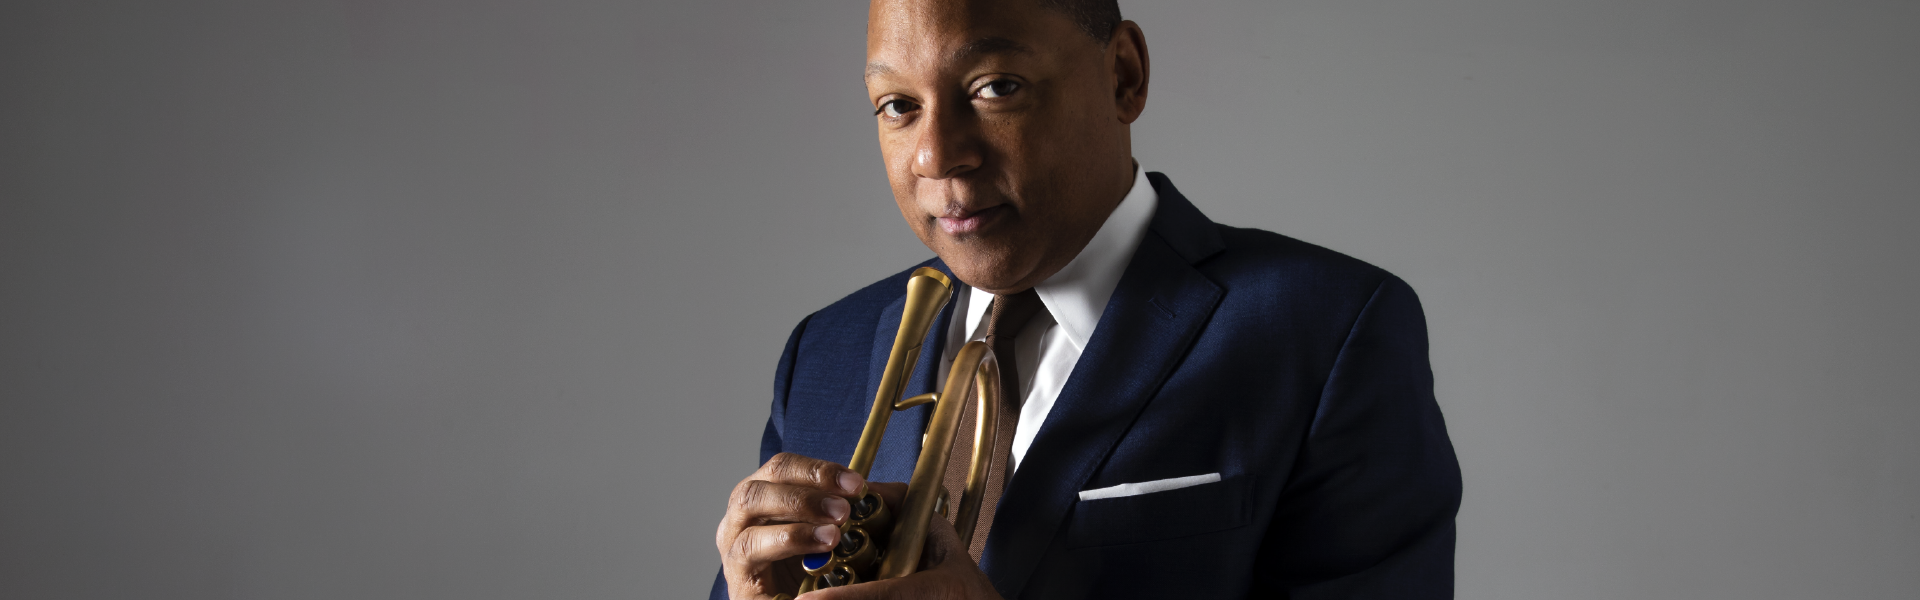 Wynton Marsalis stands with his trumpet.